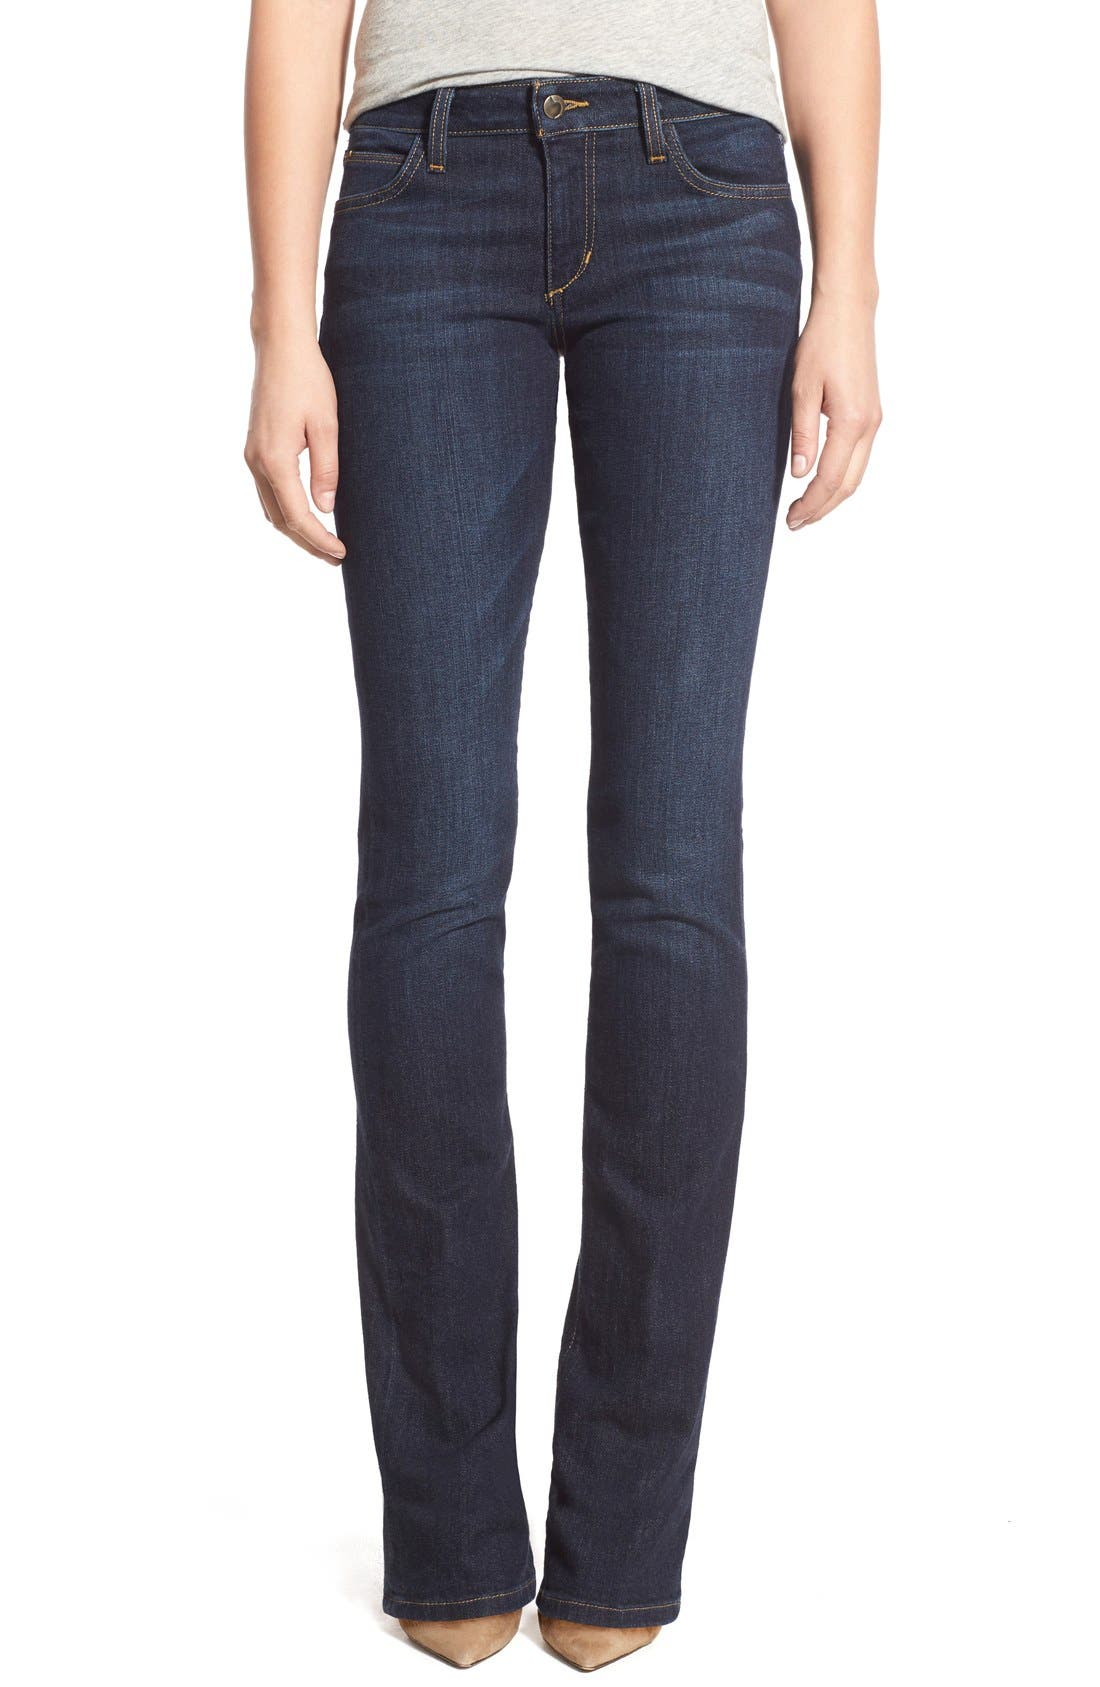 Honey Curvy Bootcut Jeans,                             Main thumbnail 1, color,                             RIKKI